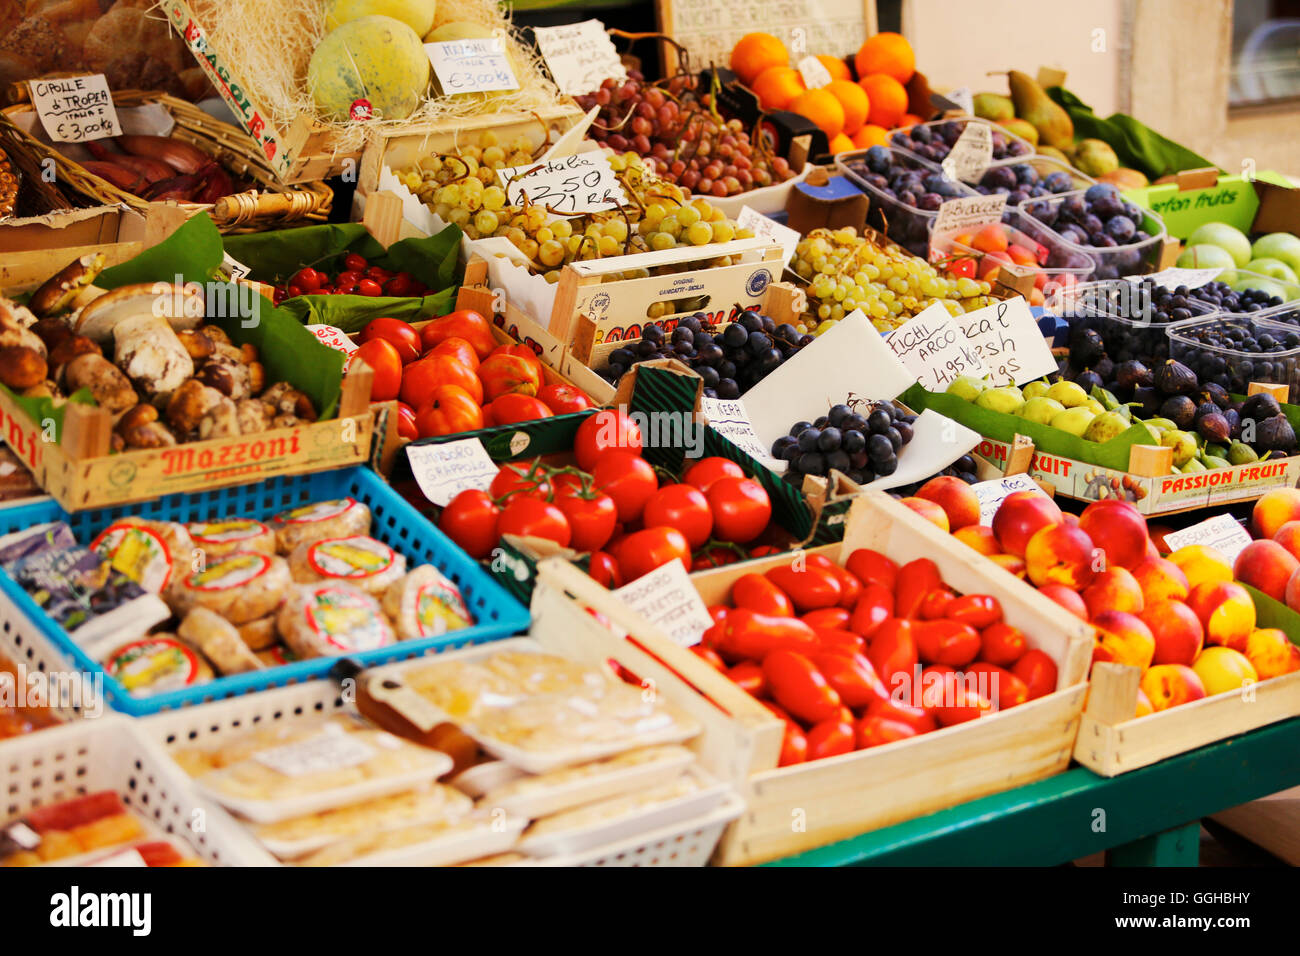 Greengrocery in the old town, Arco, Trentino-Alto Adige, Italy - Stock Image